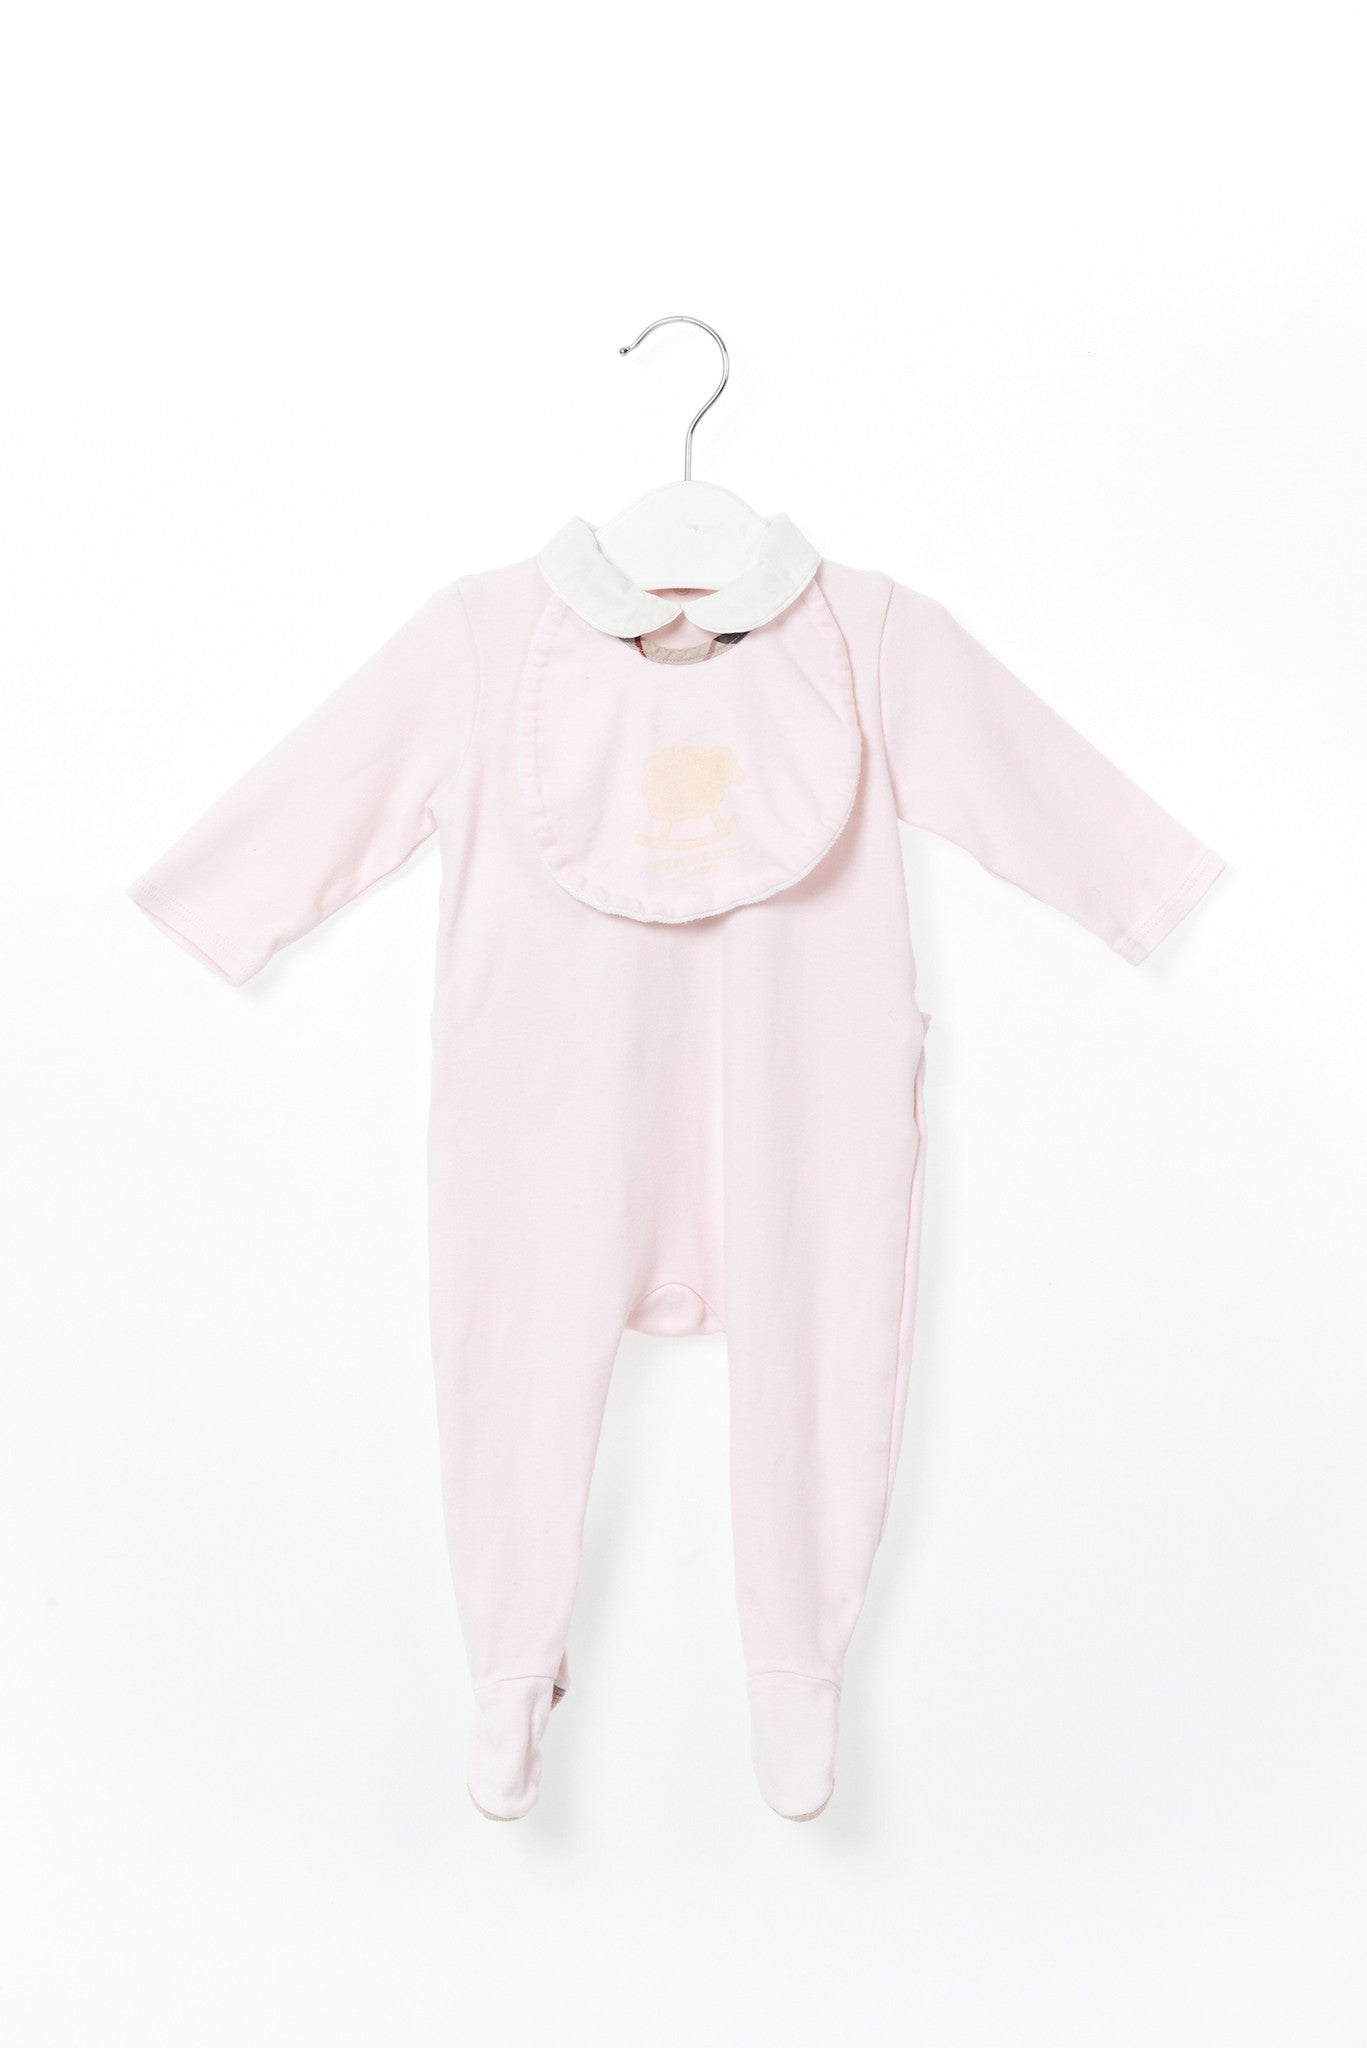 10001316~Jumpsuit & Bib 0-3M, Burberry at Retykle - Online Baby & Kids Clothing Up to 90% Off